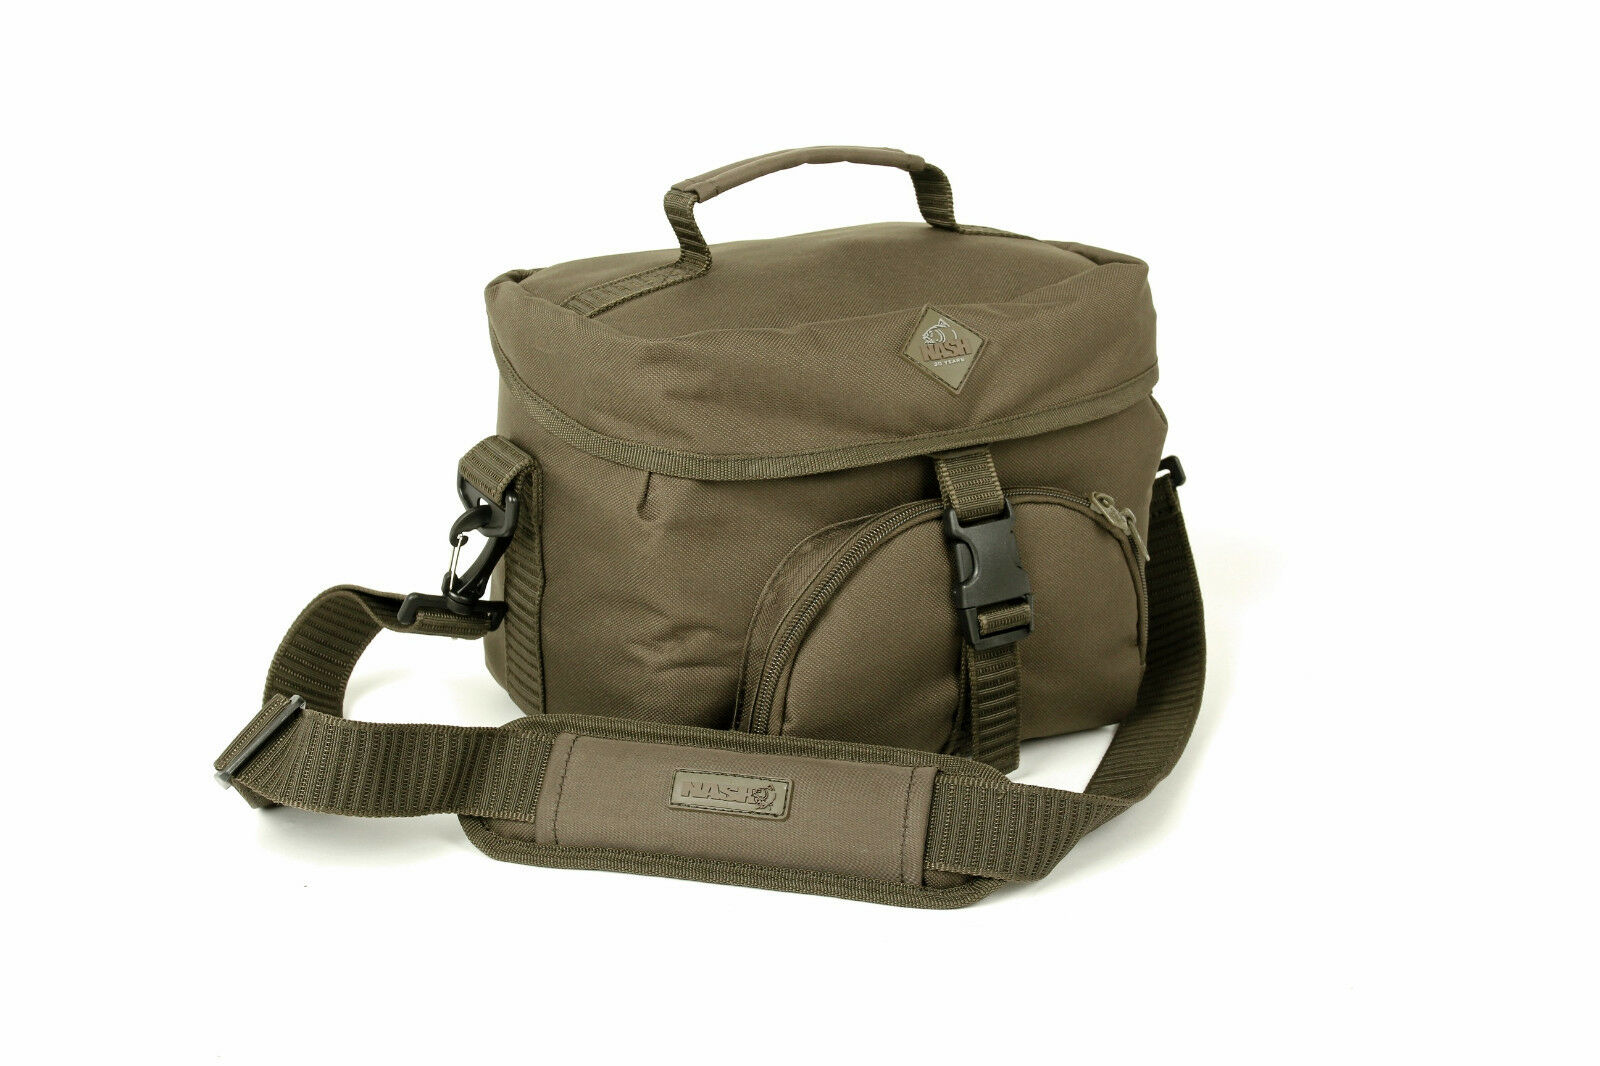 Nash Camera Bag XL t3370 bolsa estuche para cámara Bag Bag Bag Carryall b4a4ca